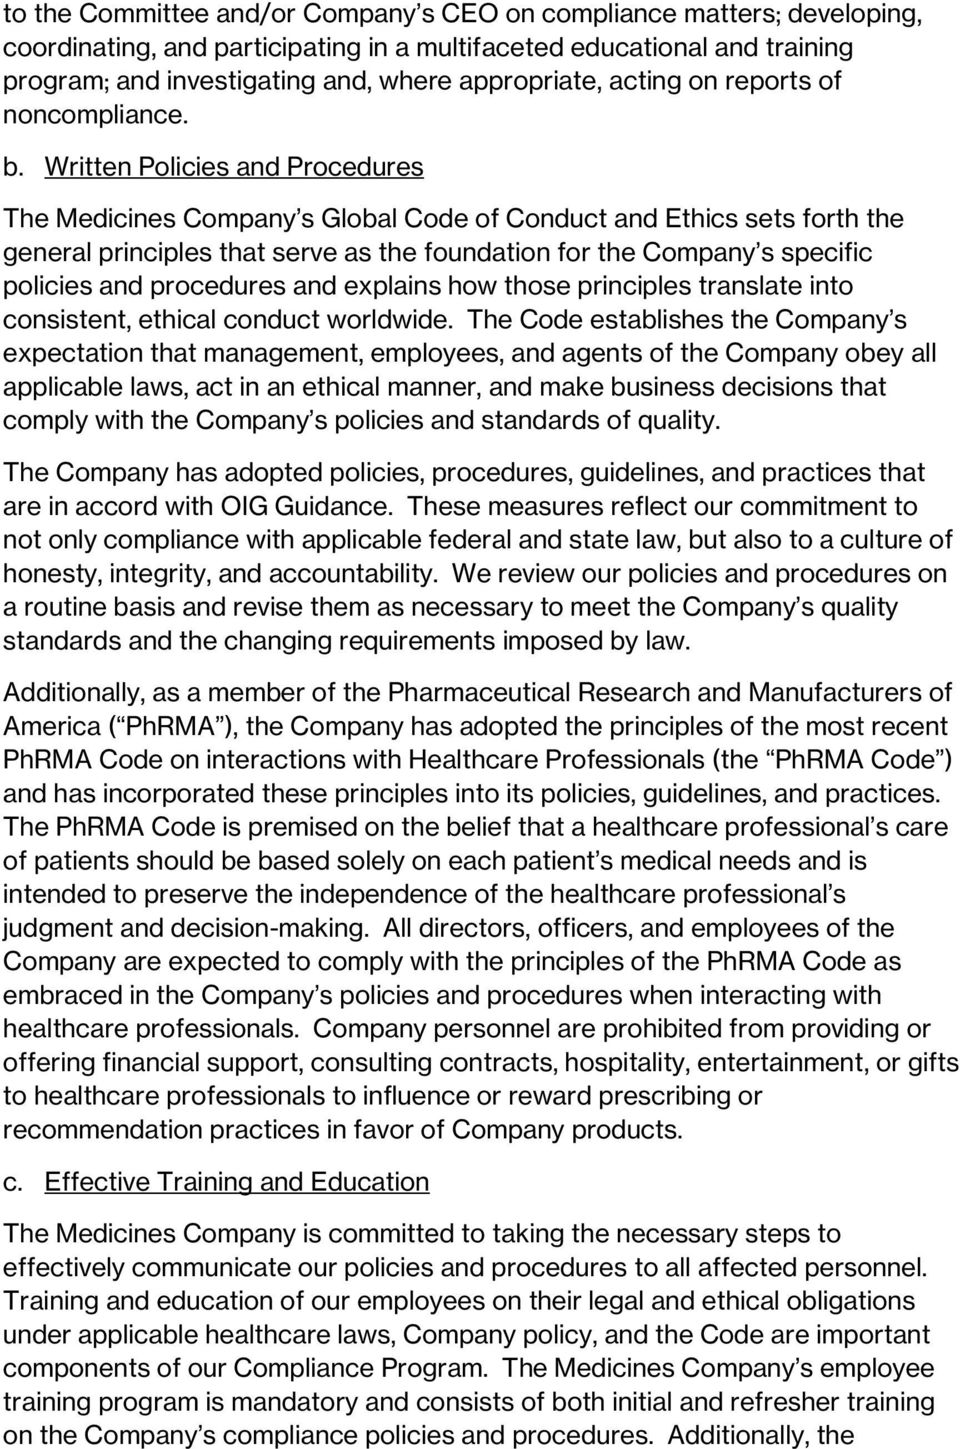 Written Policies and Procedures The Medicines Company s Global Code of Conduct and Ethics sets forth the general principles that serve as the foundation for the Company s specific policies and